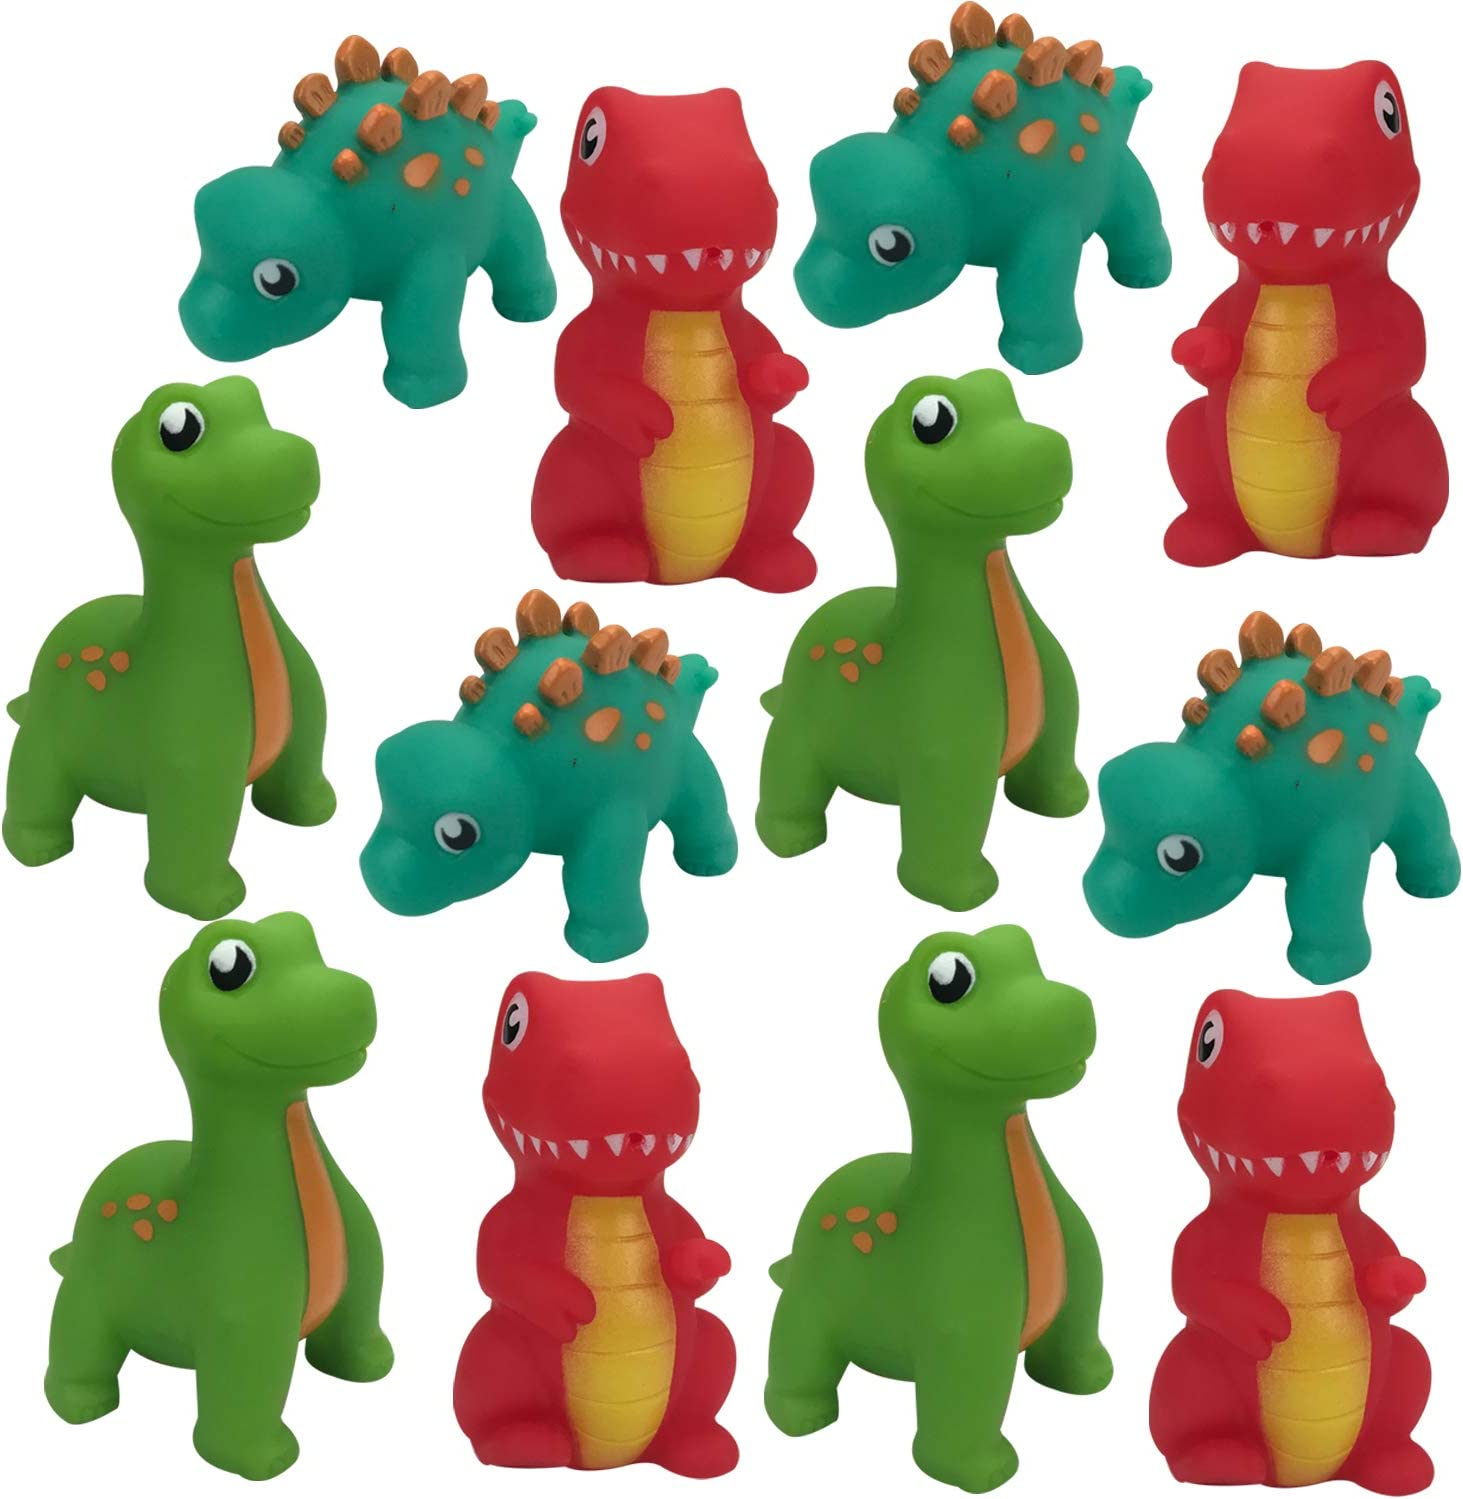 Unicorn Water Squirting Bath Toys Pack of 12 Party Favors Goodie Bag Stuffers Livativ Playko 2 Inch Animal Water Squirter Bath Toys Pack of 12 Animal Shaped Bath Toys for Kids and Toddlers